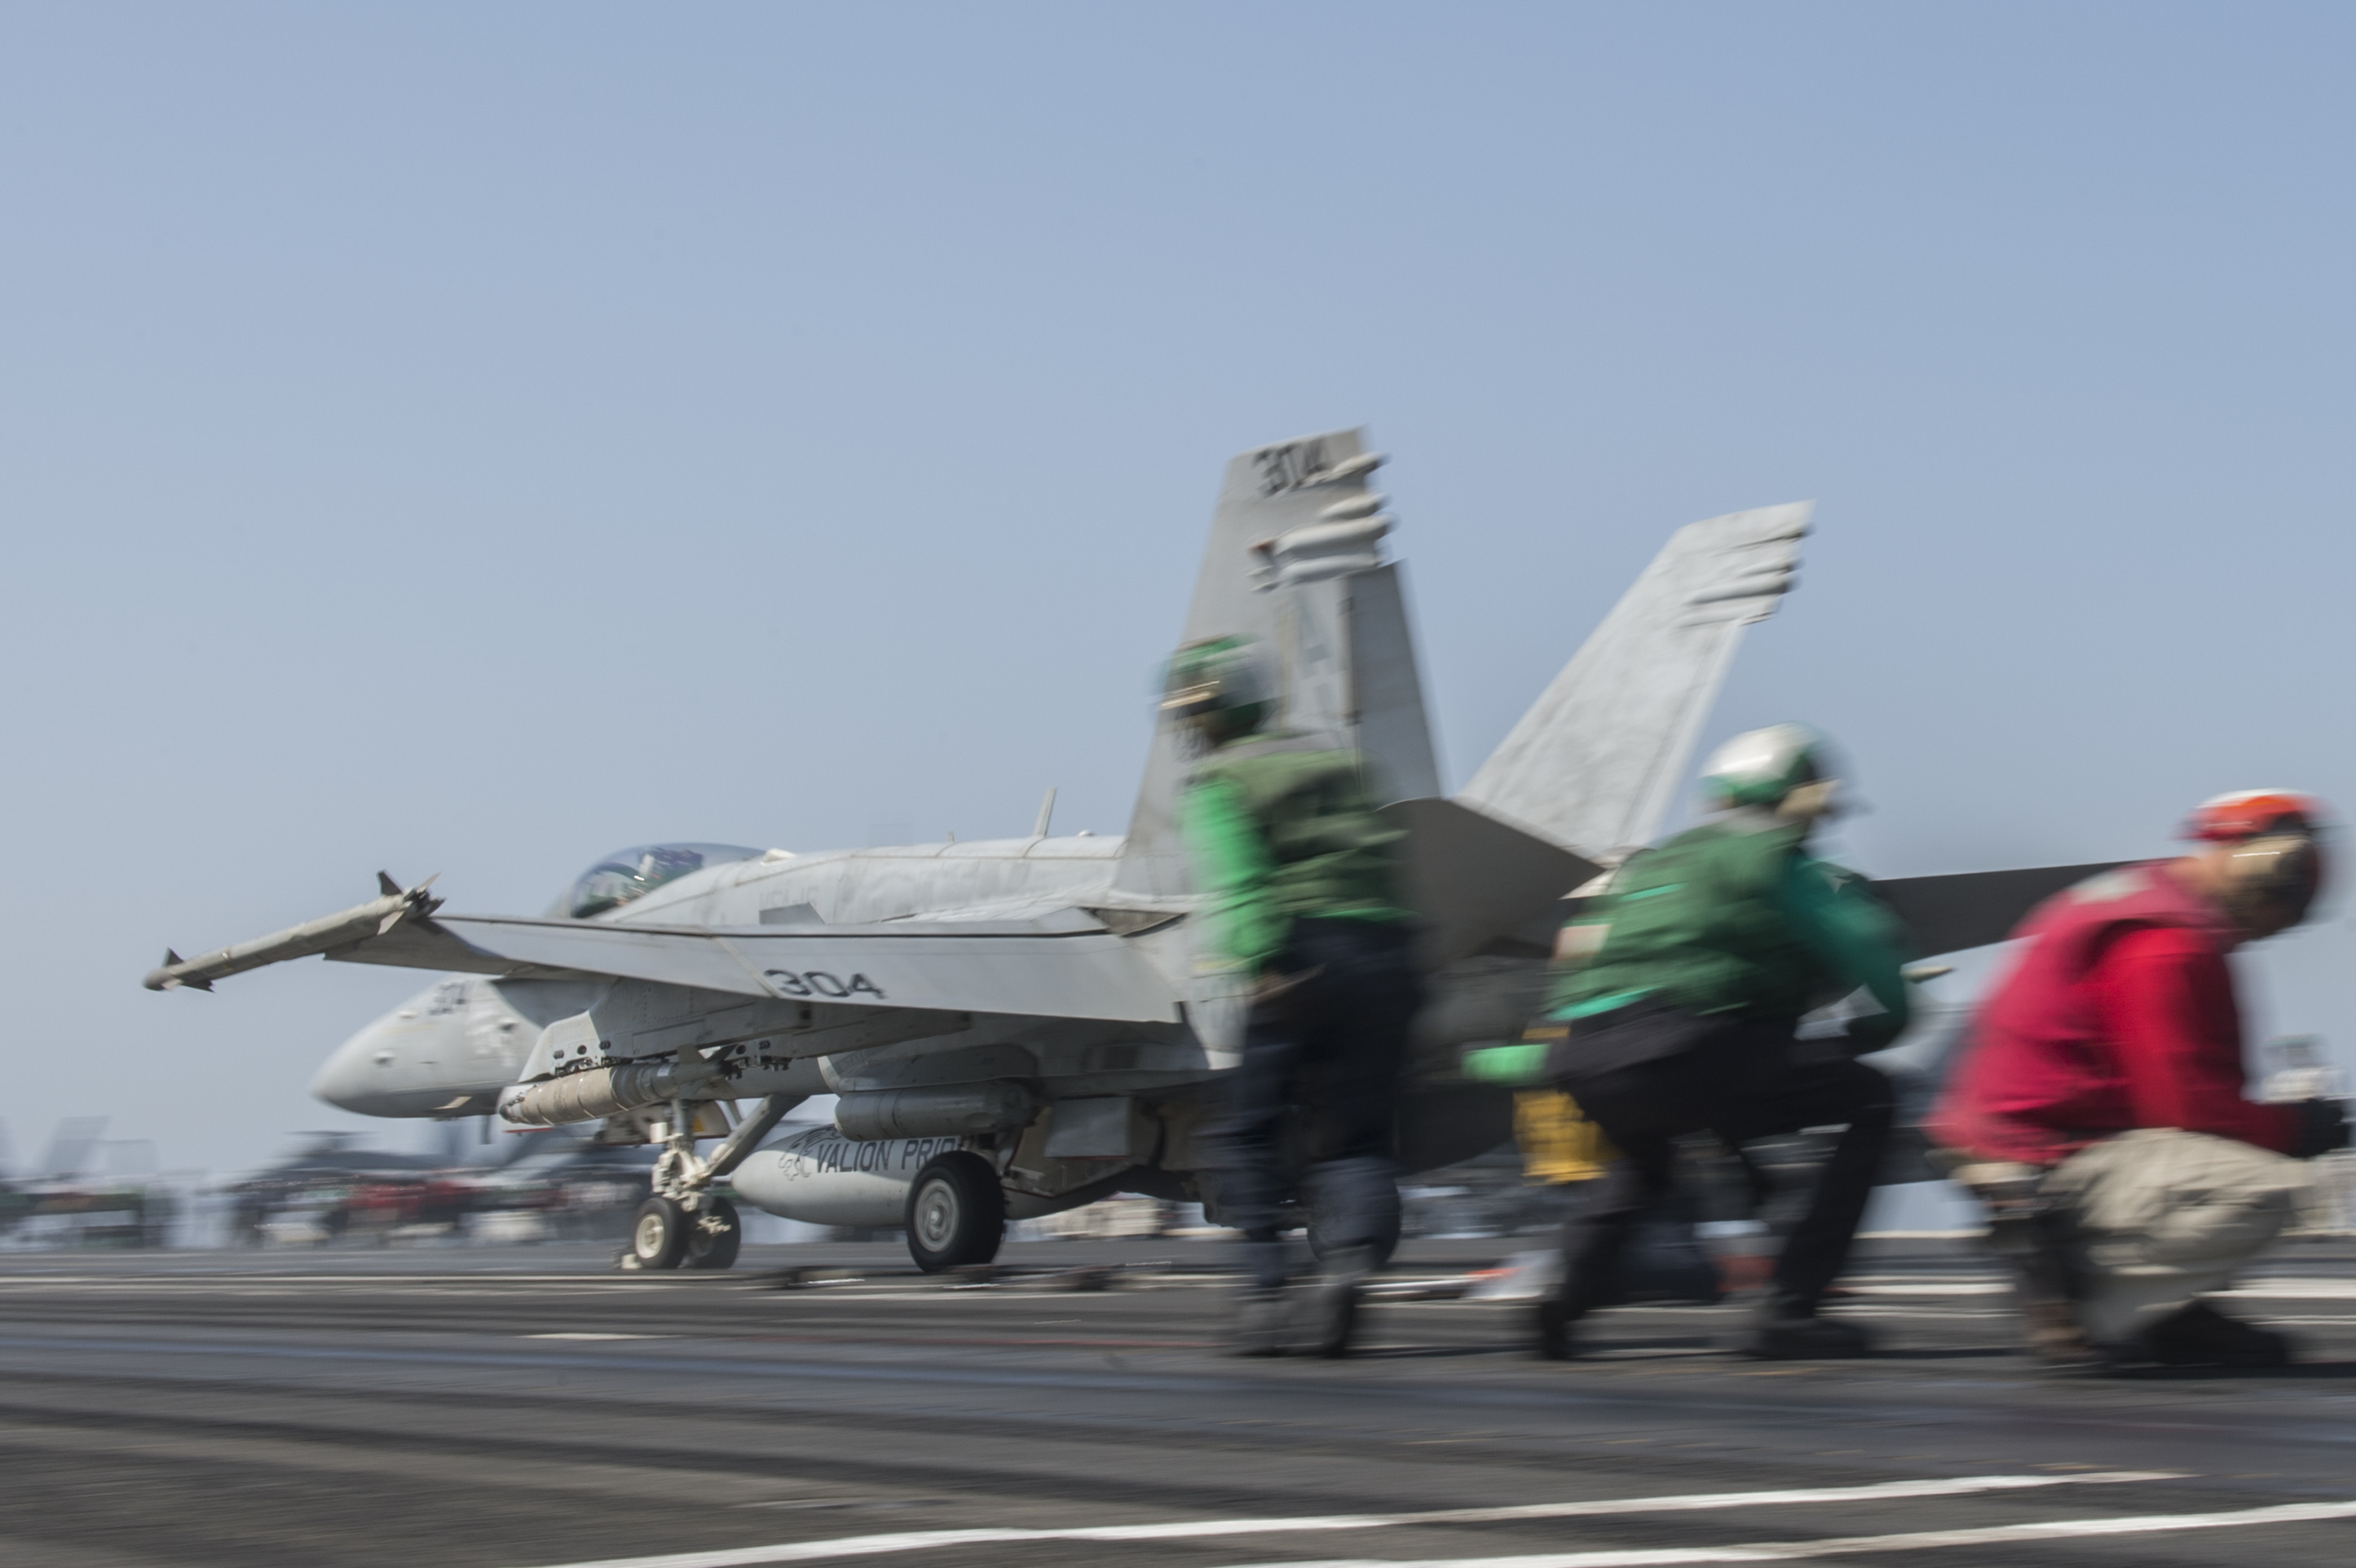 An F/A-18C Hornet attached to the Valions of Strike Fighter Squadron (VFA) 15 launches from the flight deck of the aircraft carrier USS George H.W. Bush (CVN 77) on Aug. 11, 2014. US Navy Photo